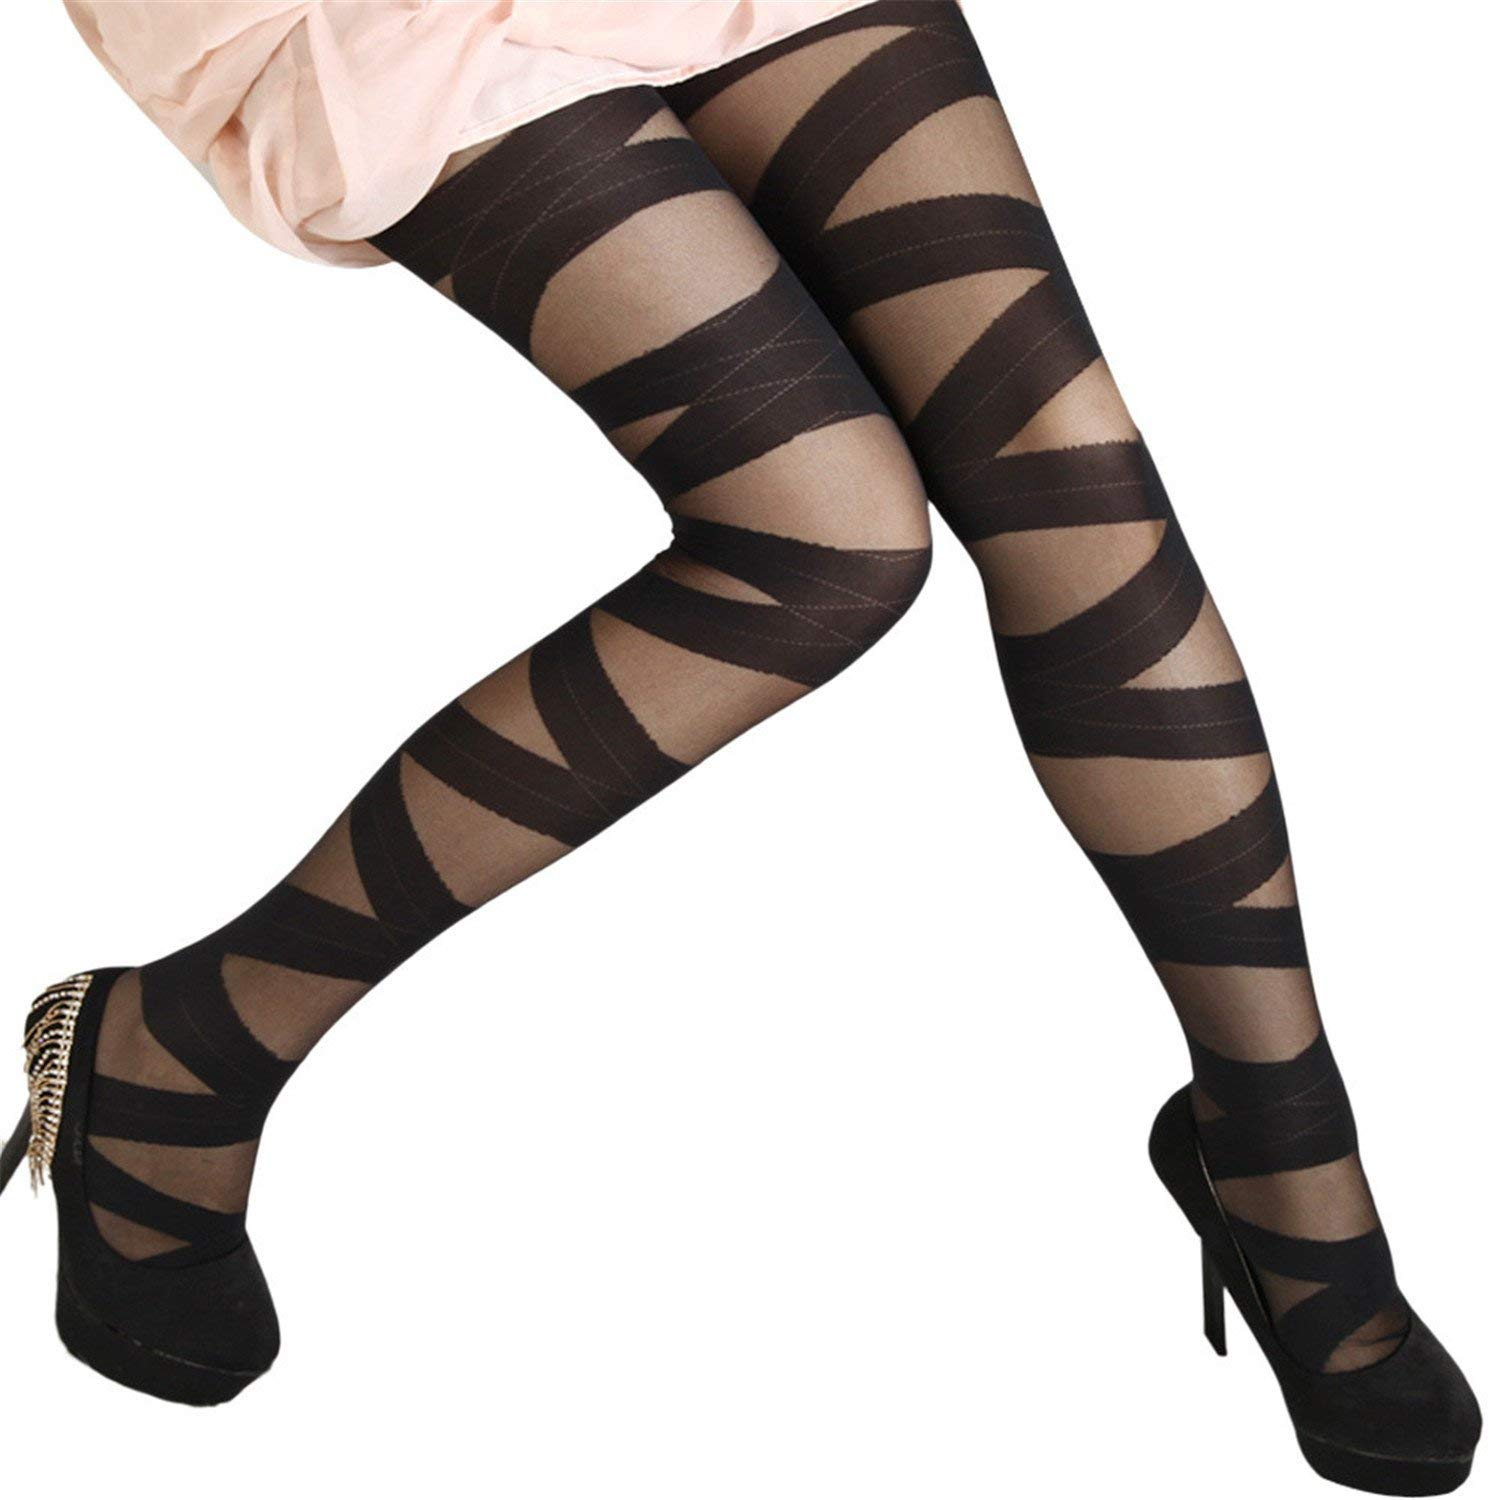 3c6d6015f58 Get Quotations · Solme Womens Bandage Opaque Over Knee Thigh High Elastic  Stockings Sheer Silk Over Knee Thigh High